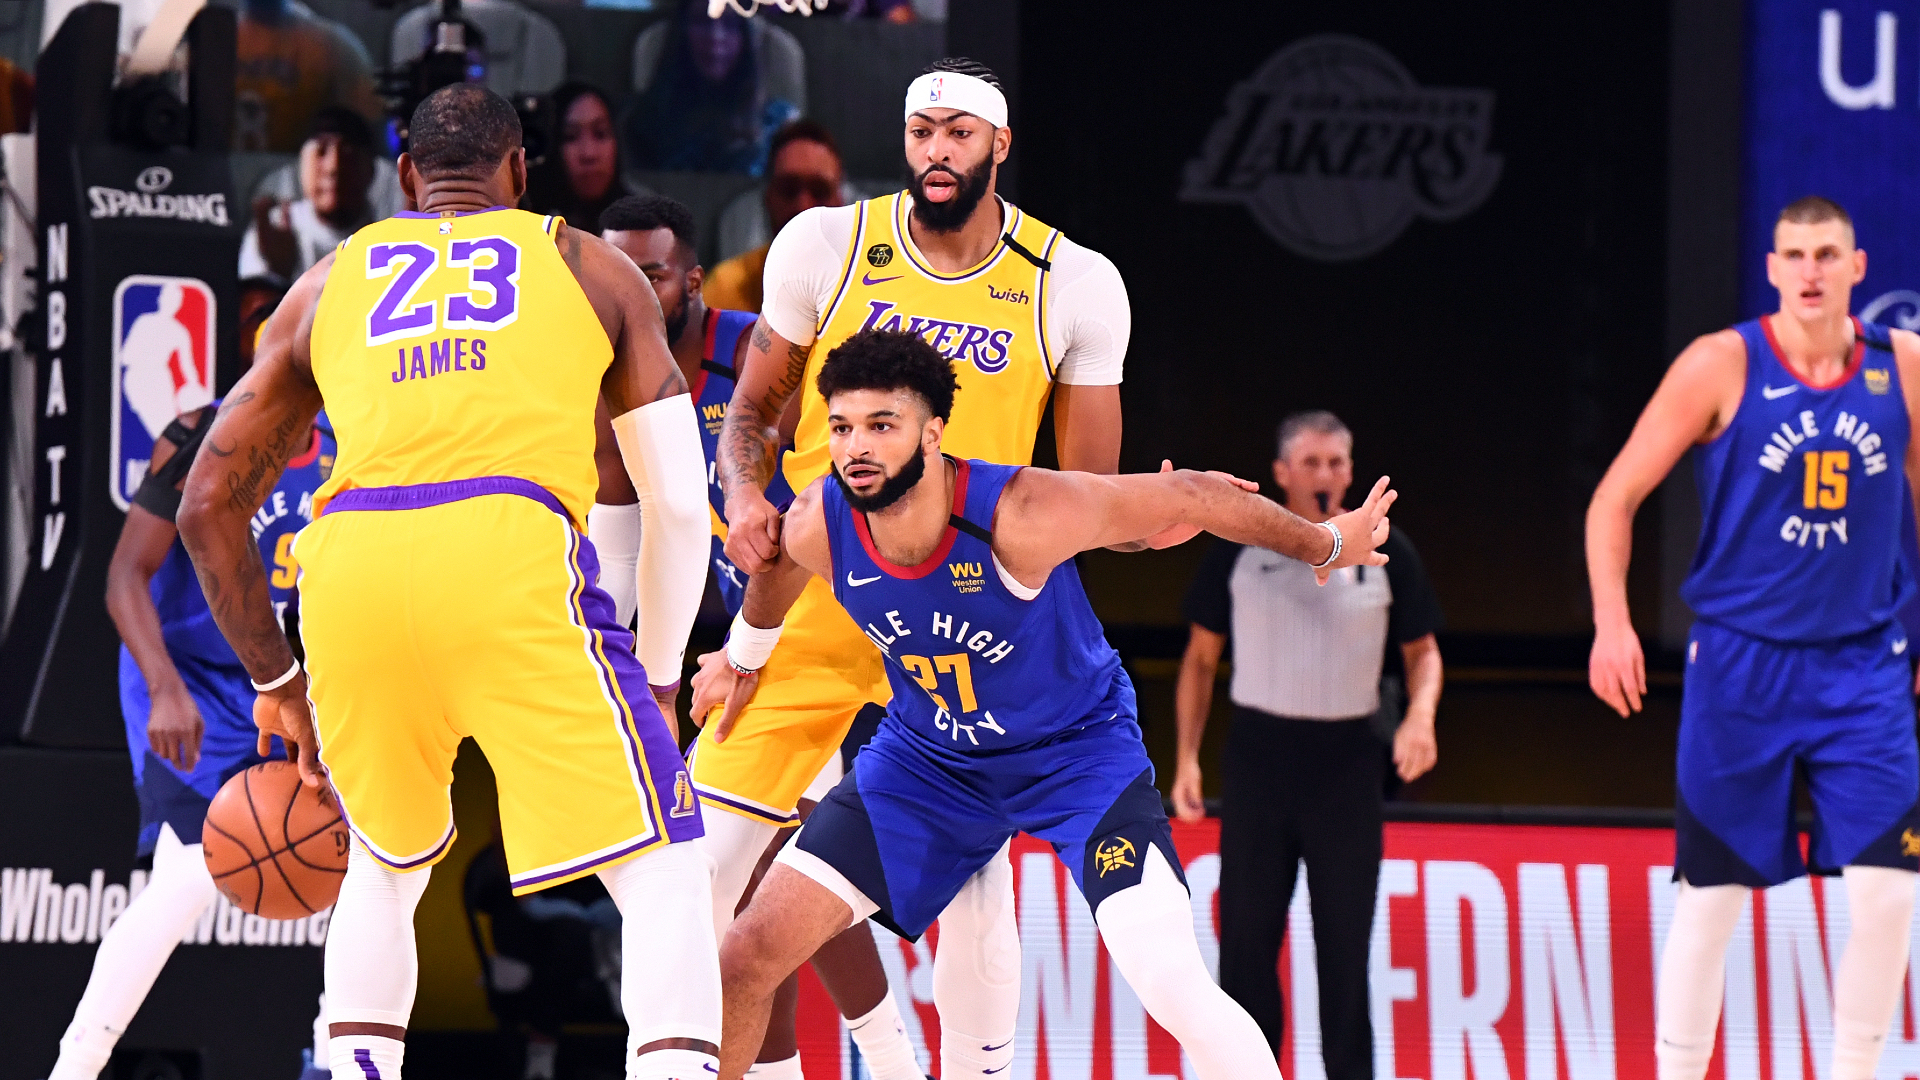 Lakers Jump Out To 1-0 Series Lead With Big Performance From Davis